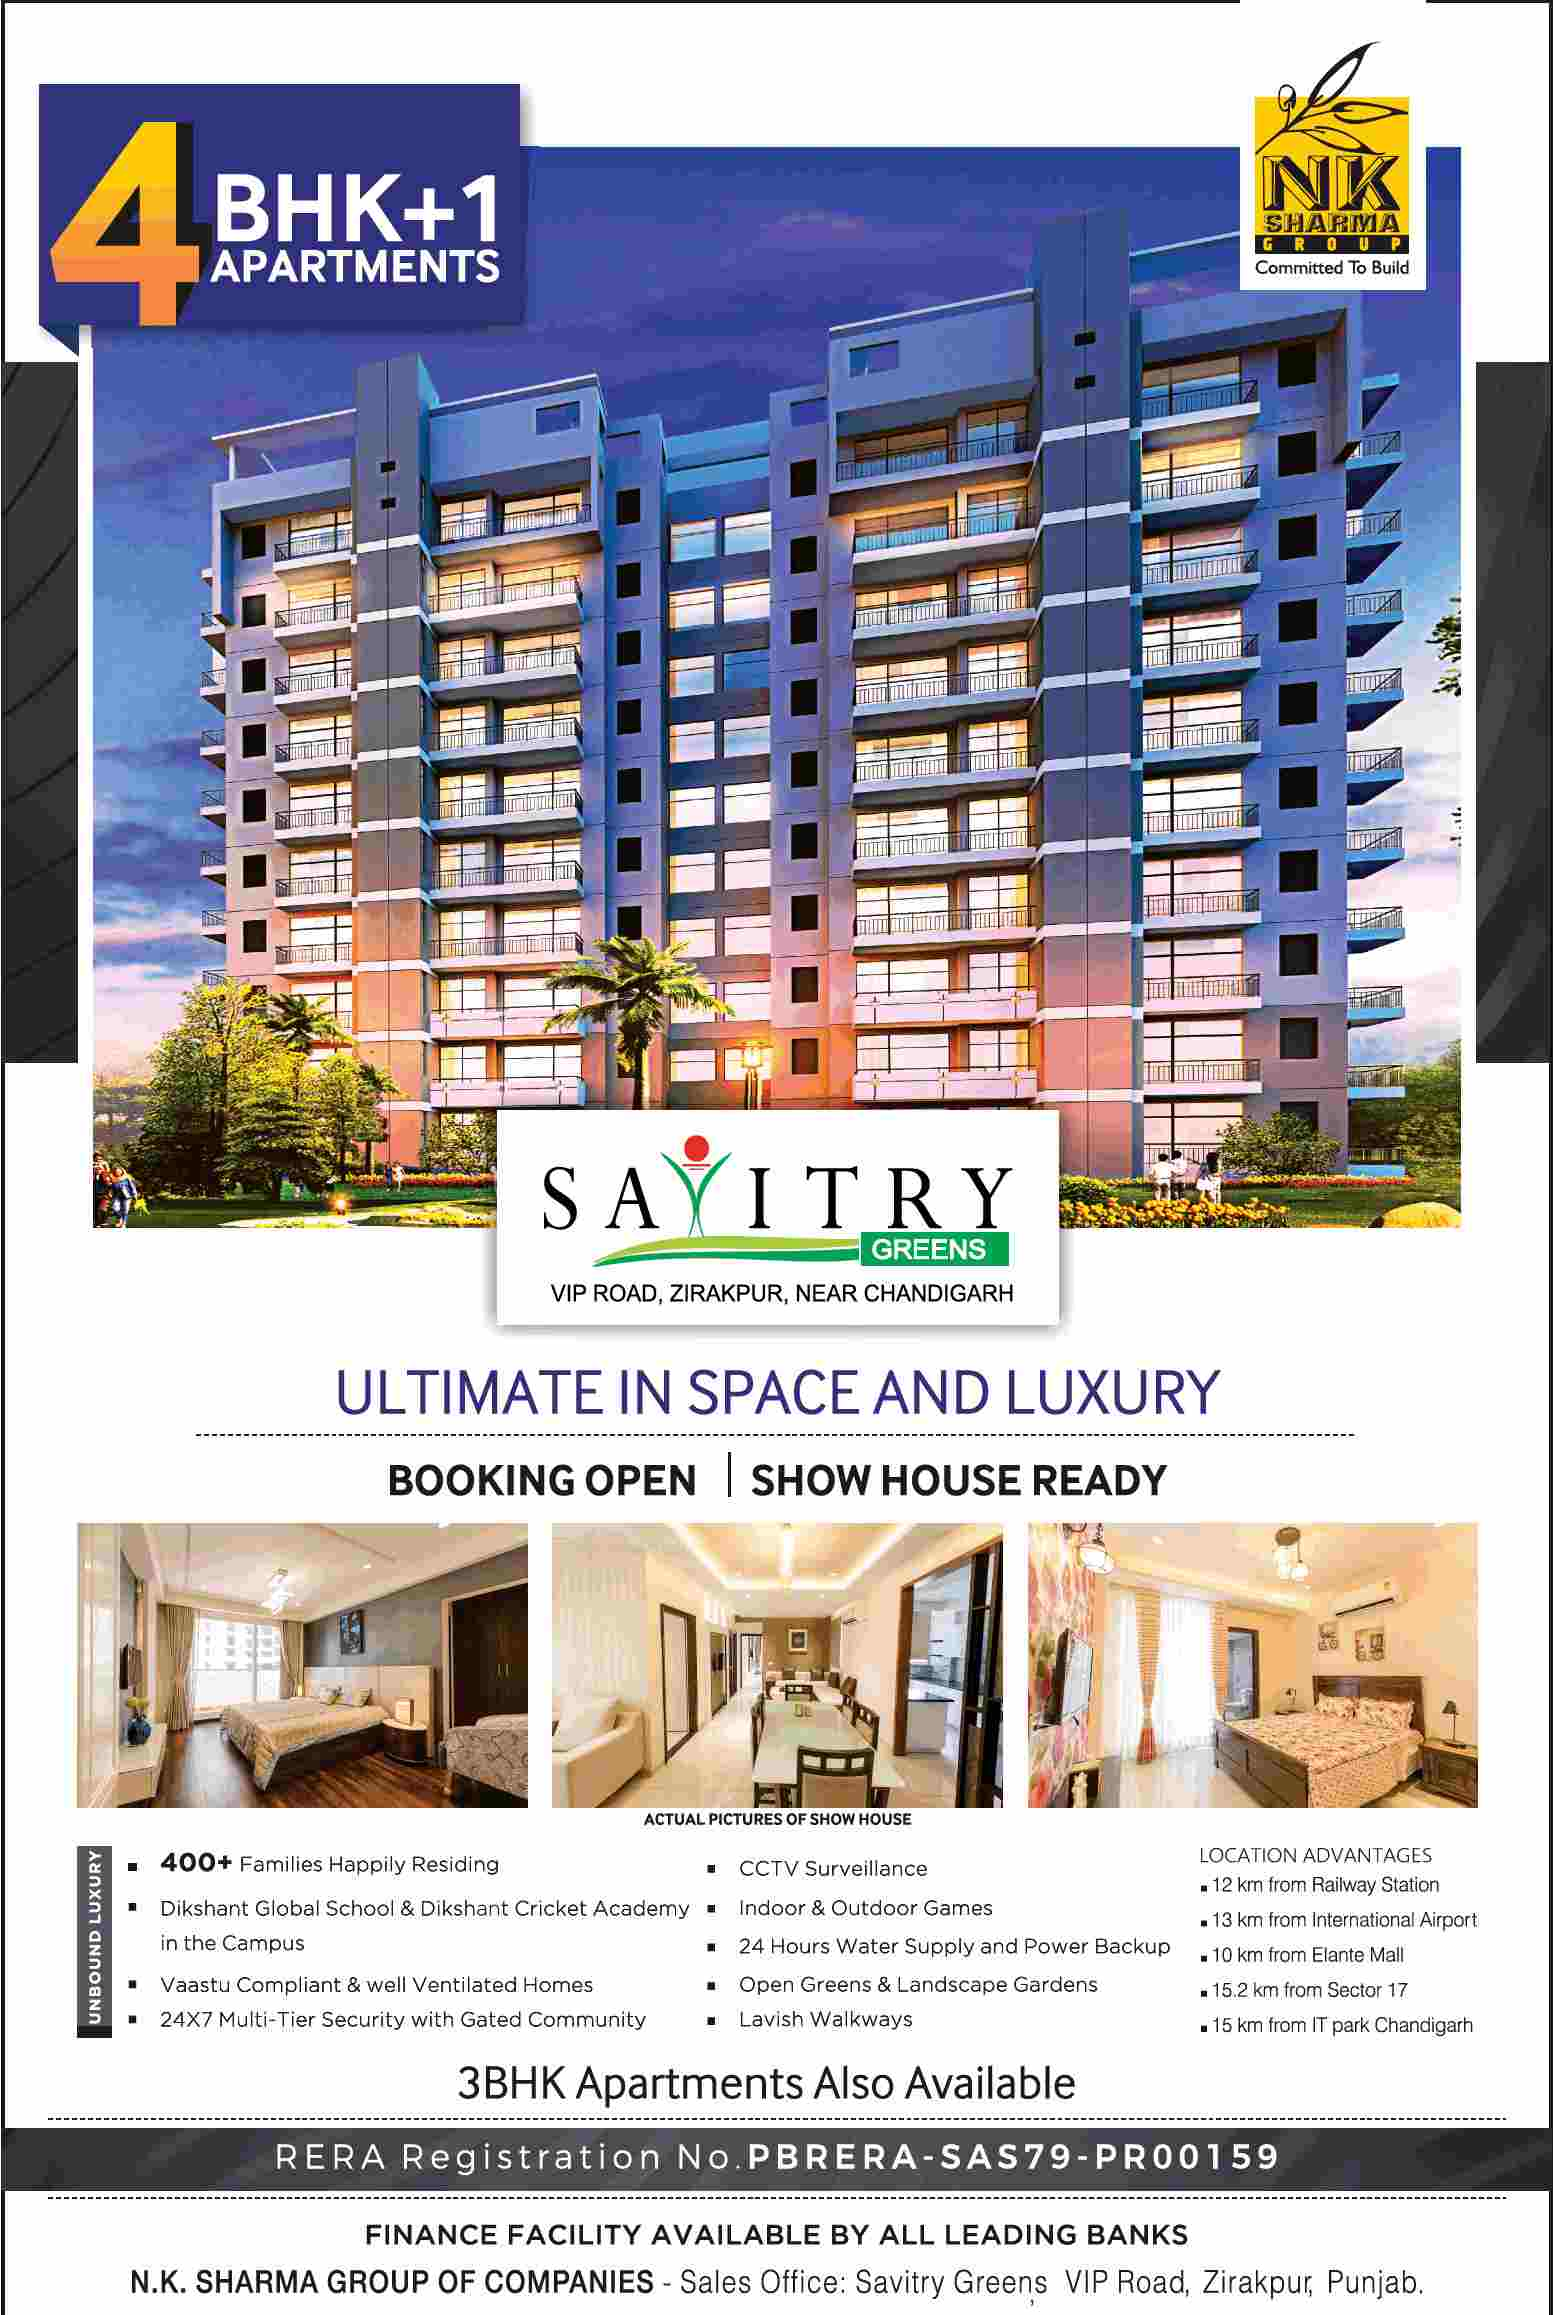 Invest in homes with ultimate space and luxury at NK Savitry Greens in Zirakpur